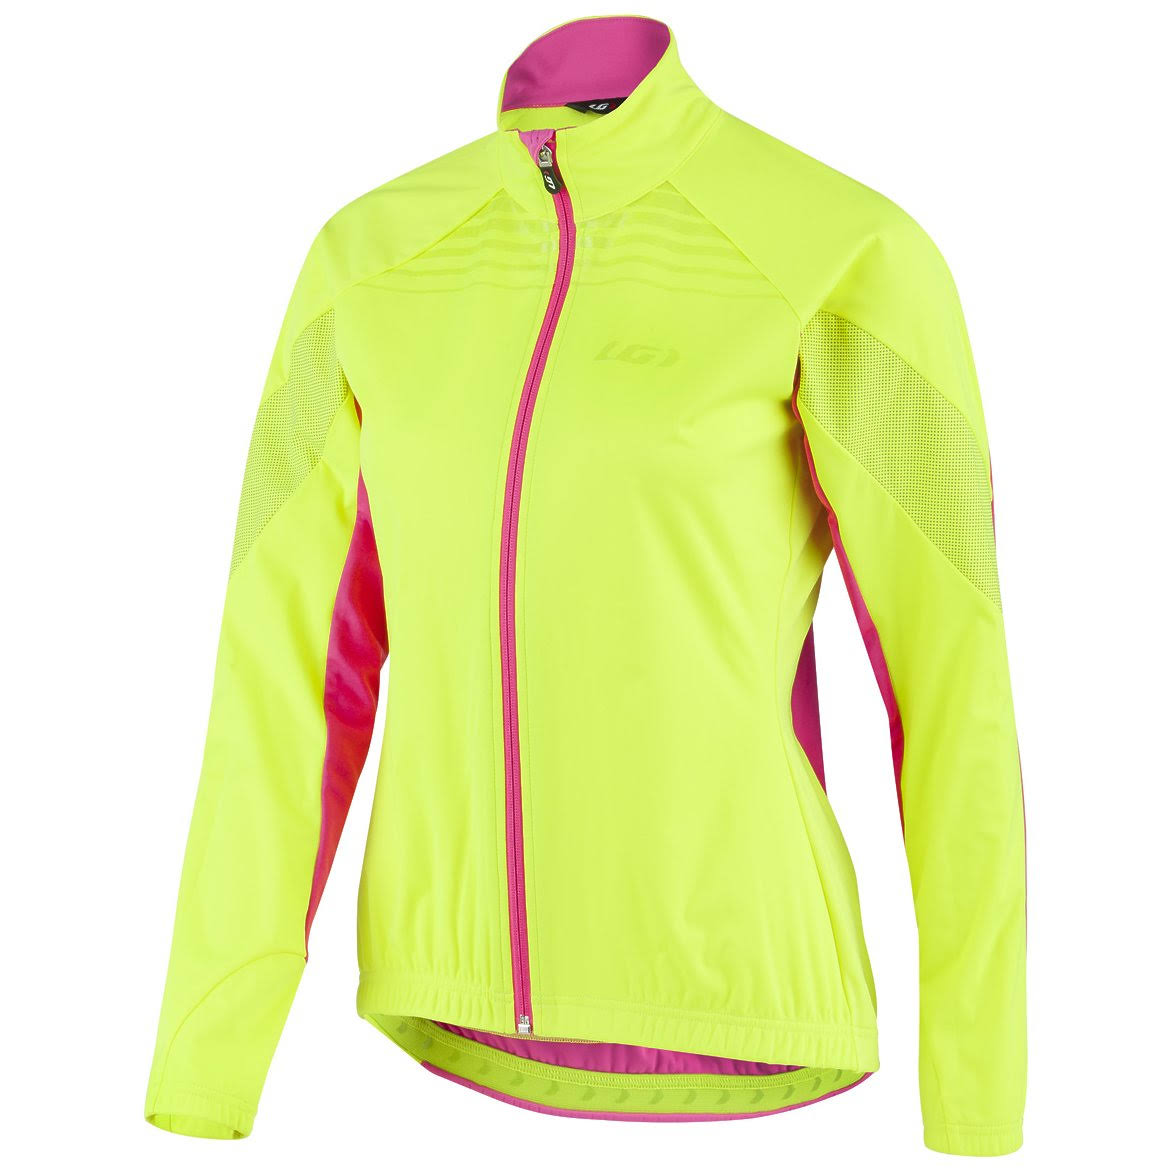 Louis Garneau Glaze 3 RTR Jacket - Women's Yellow Pink, L